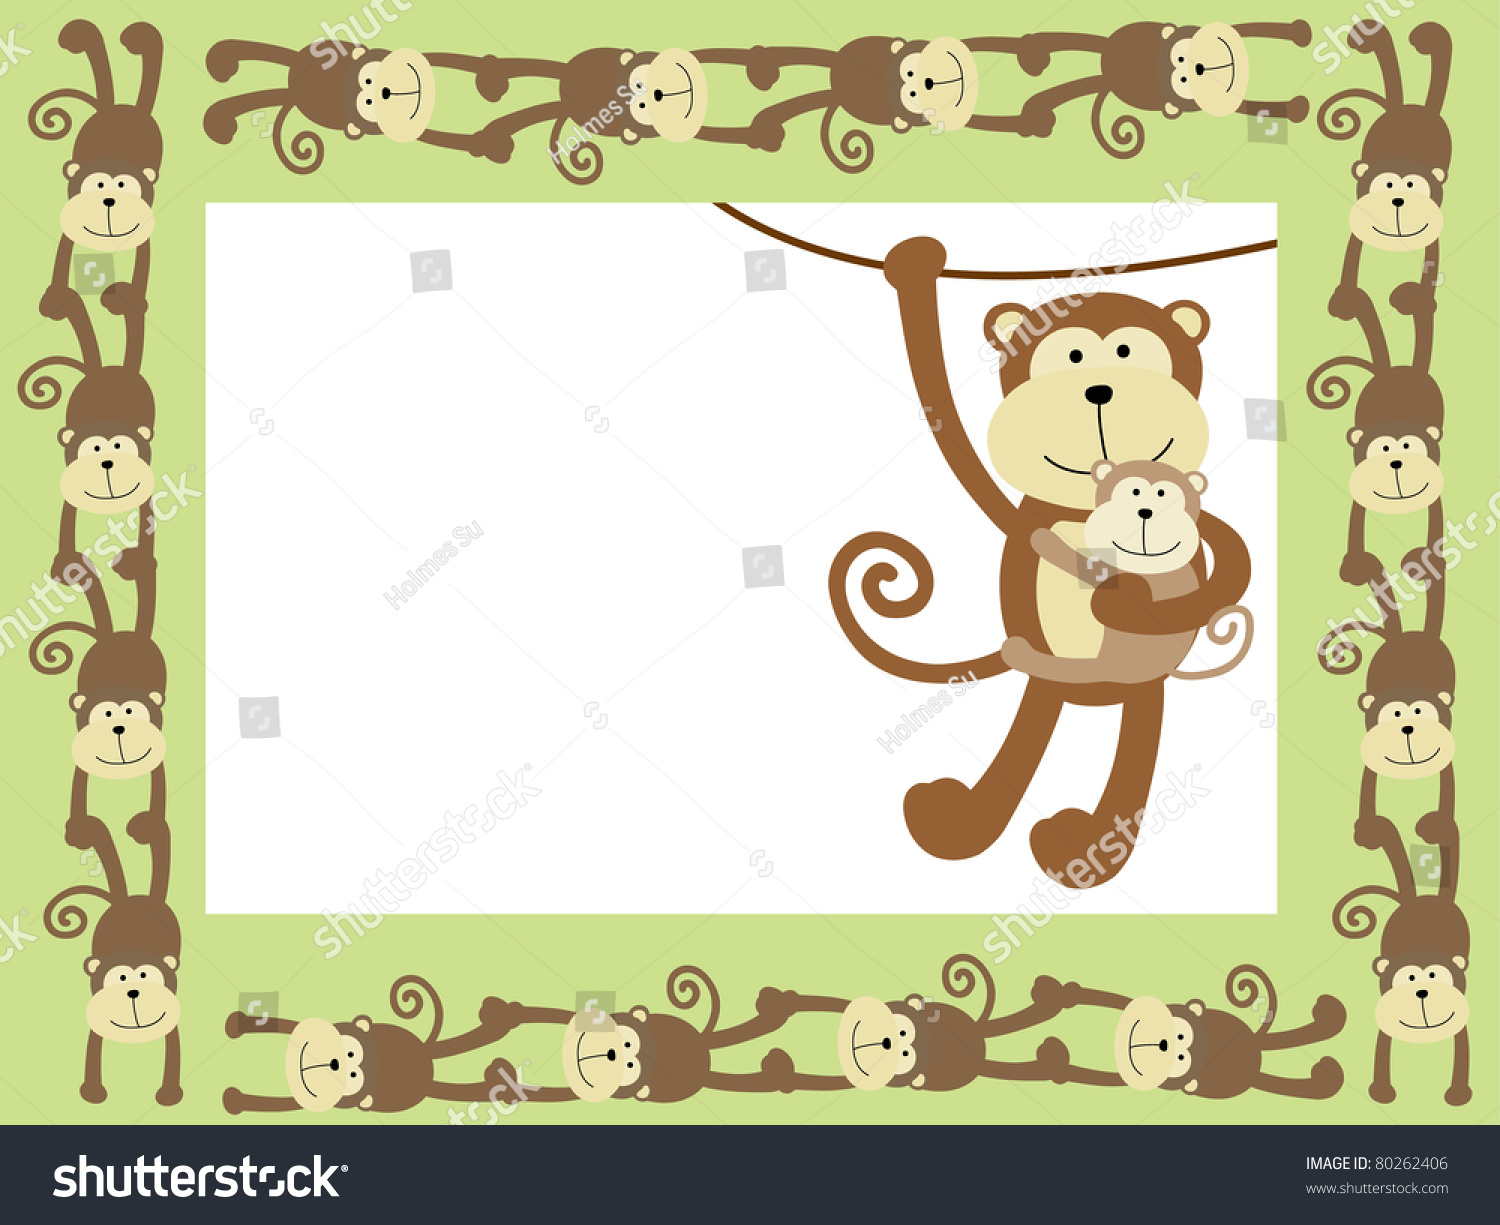 monkey frame or card - Monkey Picture Frame